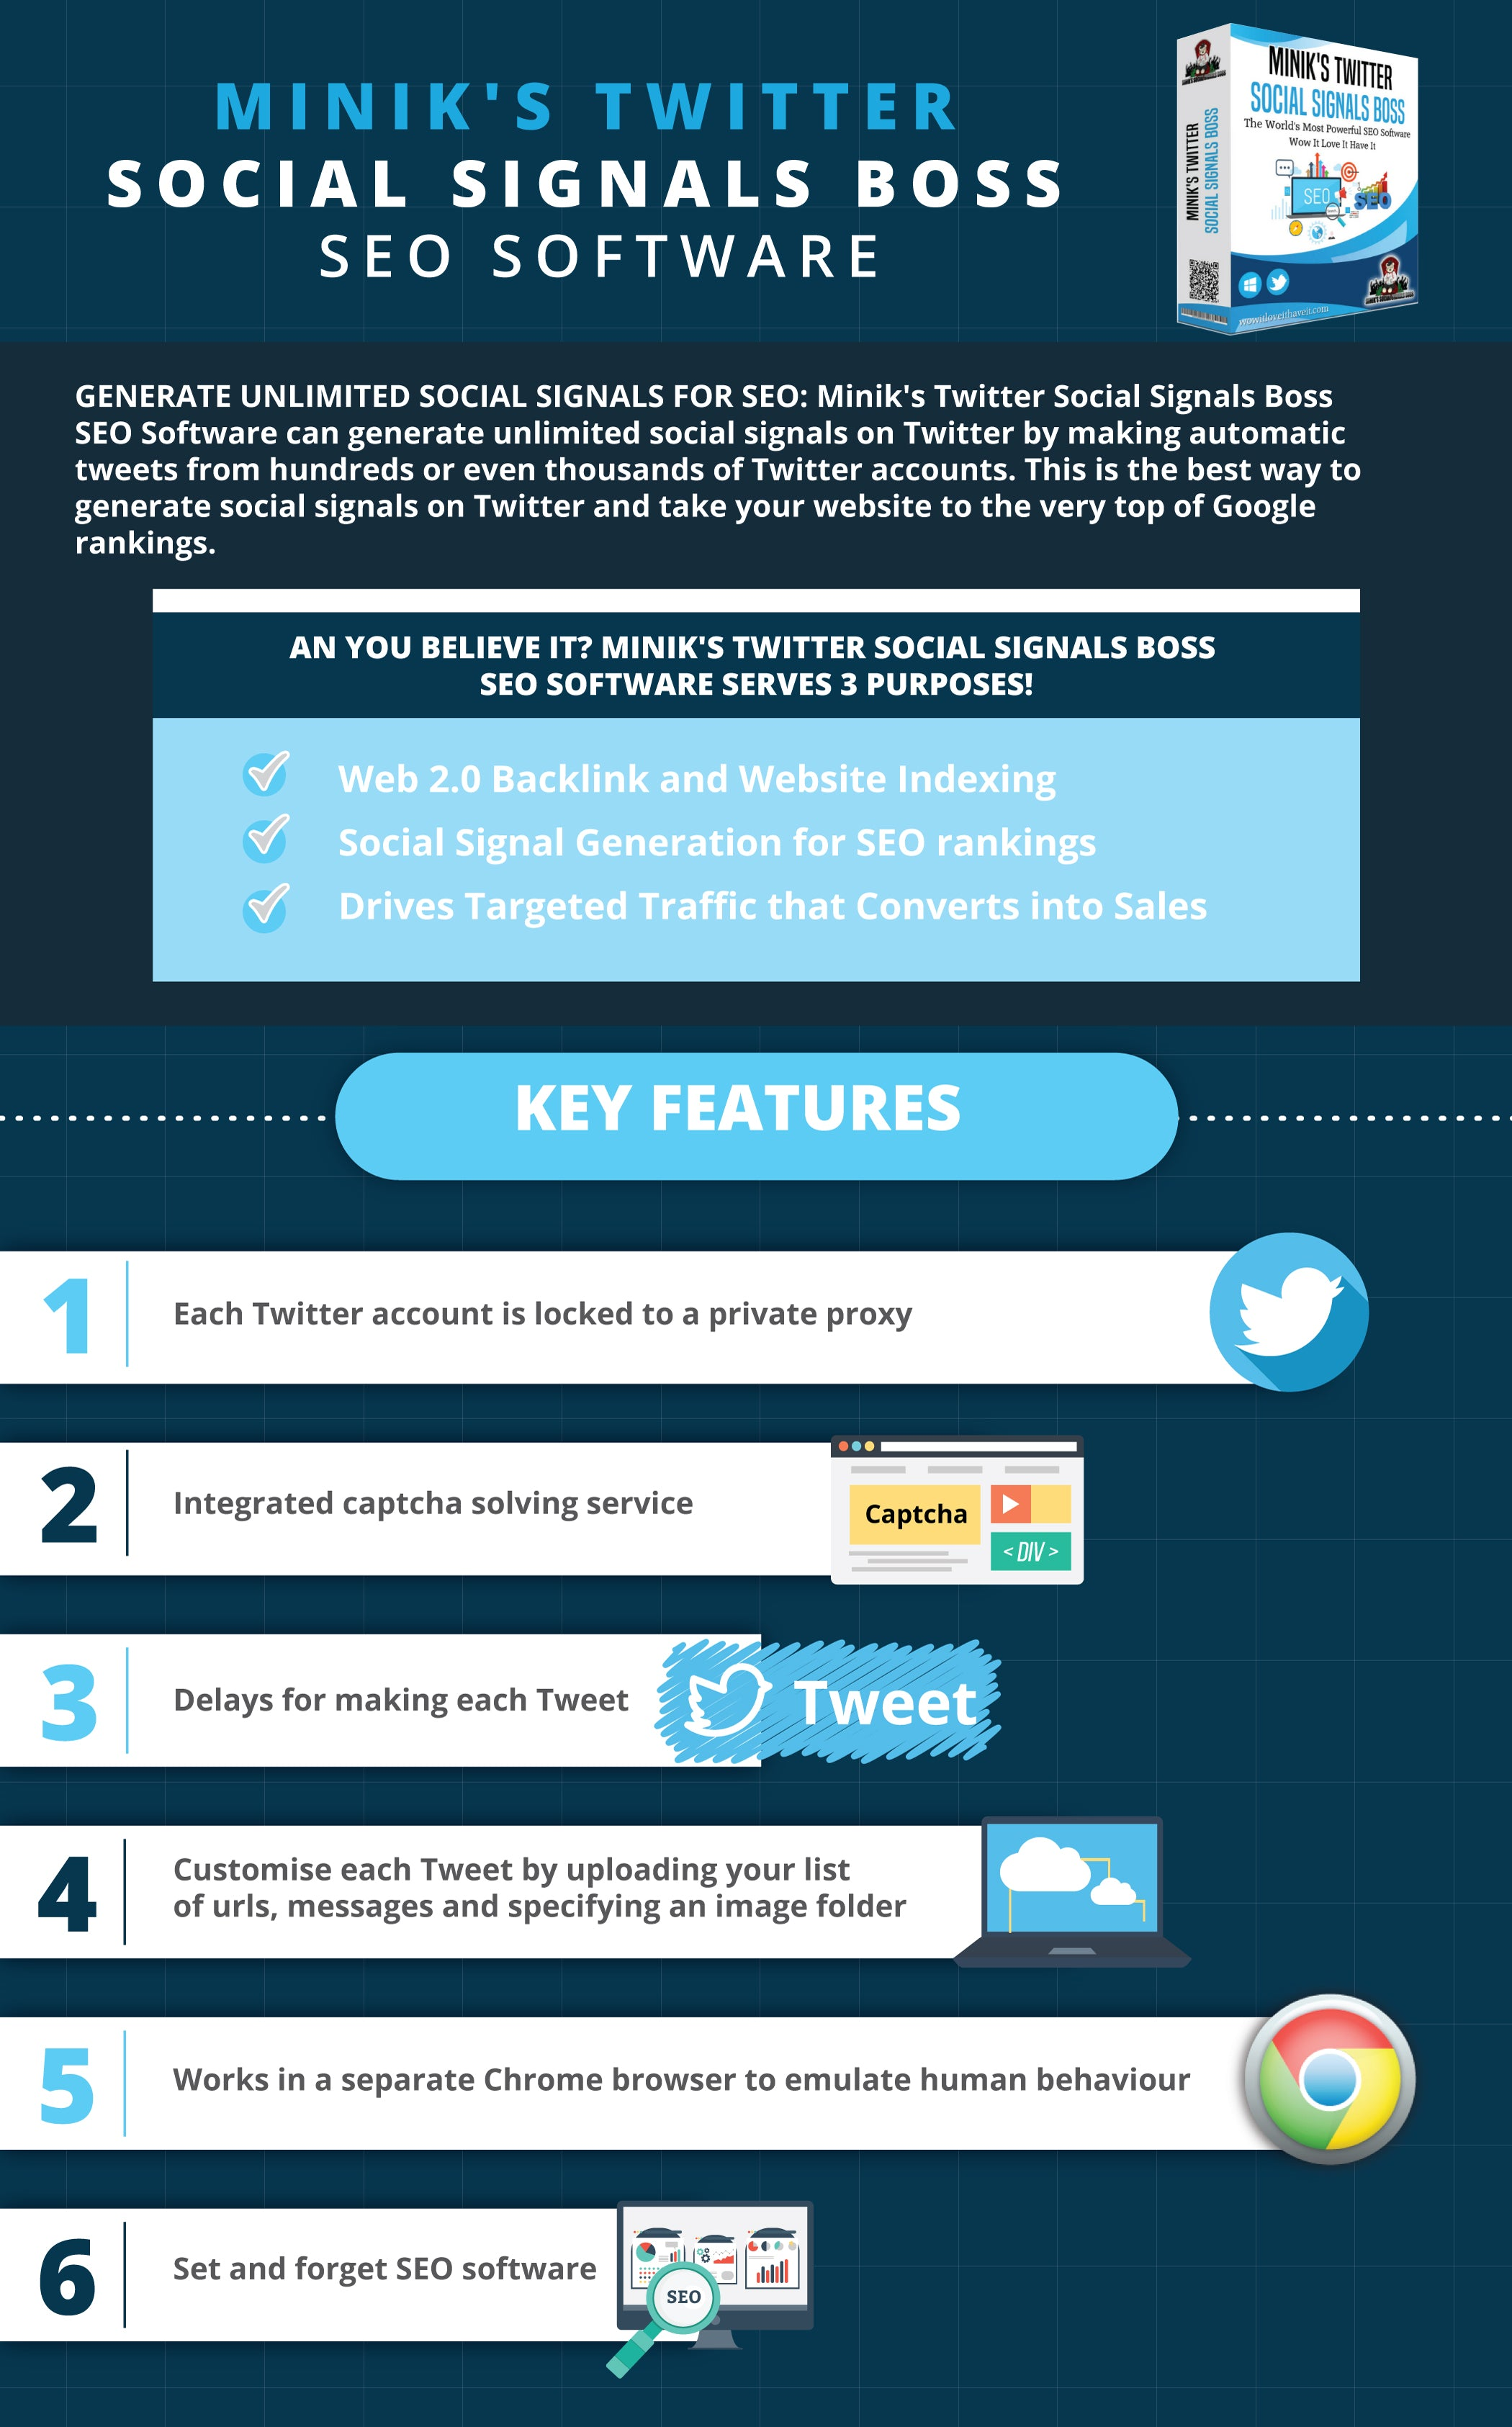 MINIK'S TWITTER SOCIAL SIGNALS BOSS SEO SOFTWARE USER GUIDE